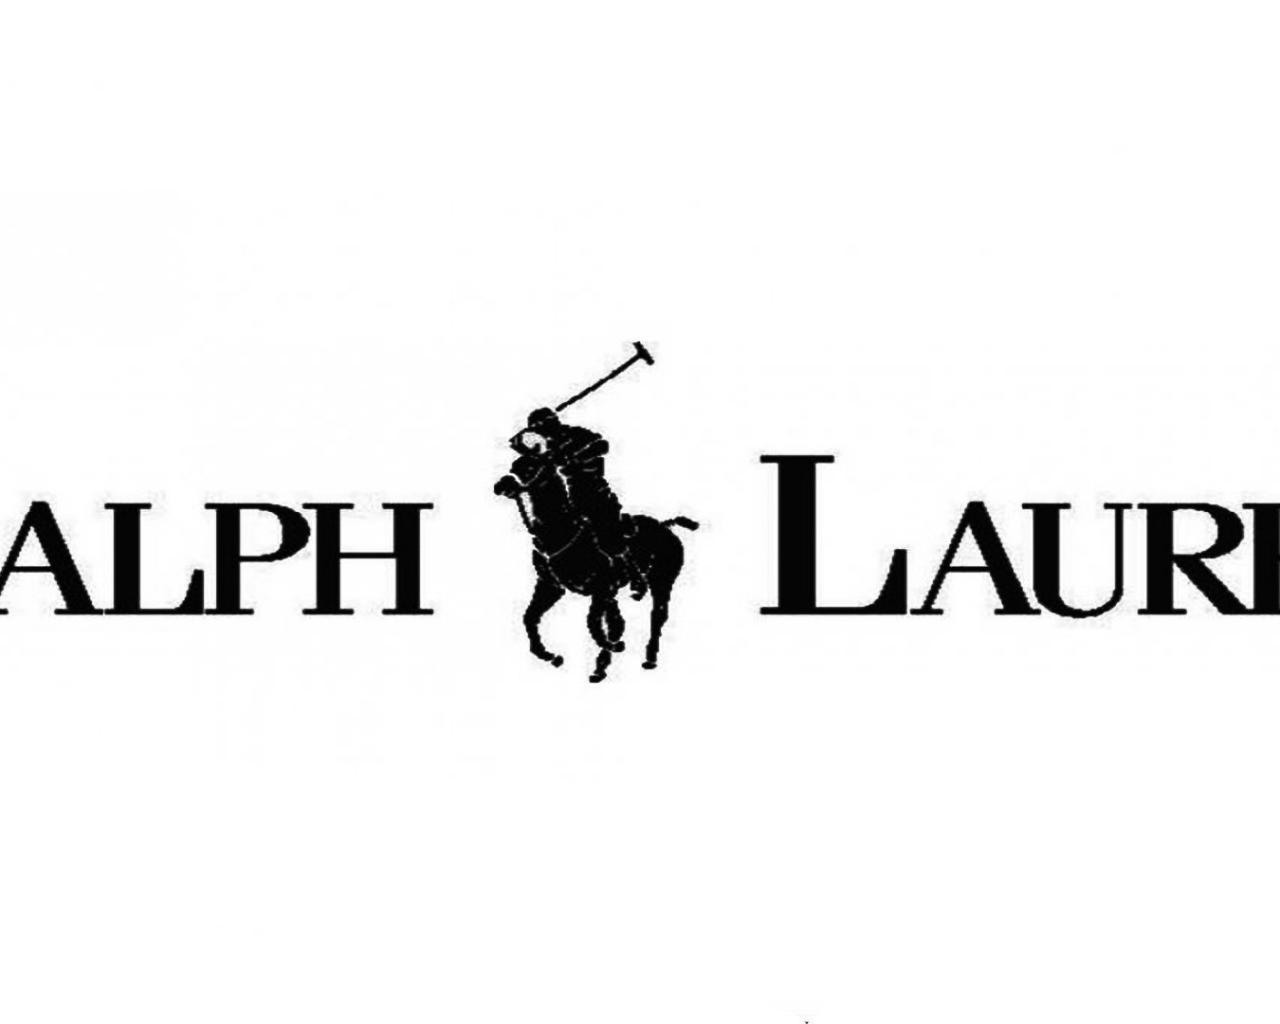 ralph lauren logo wallpaper 1280x1024